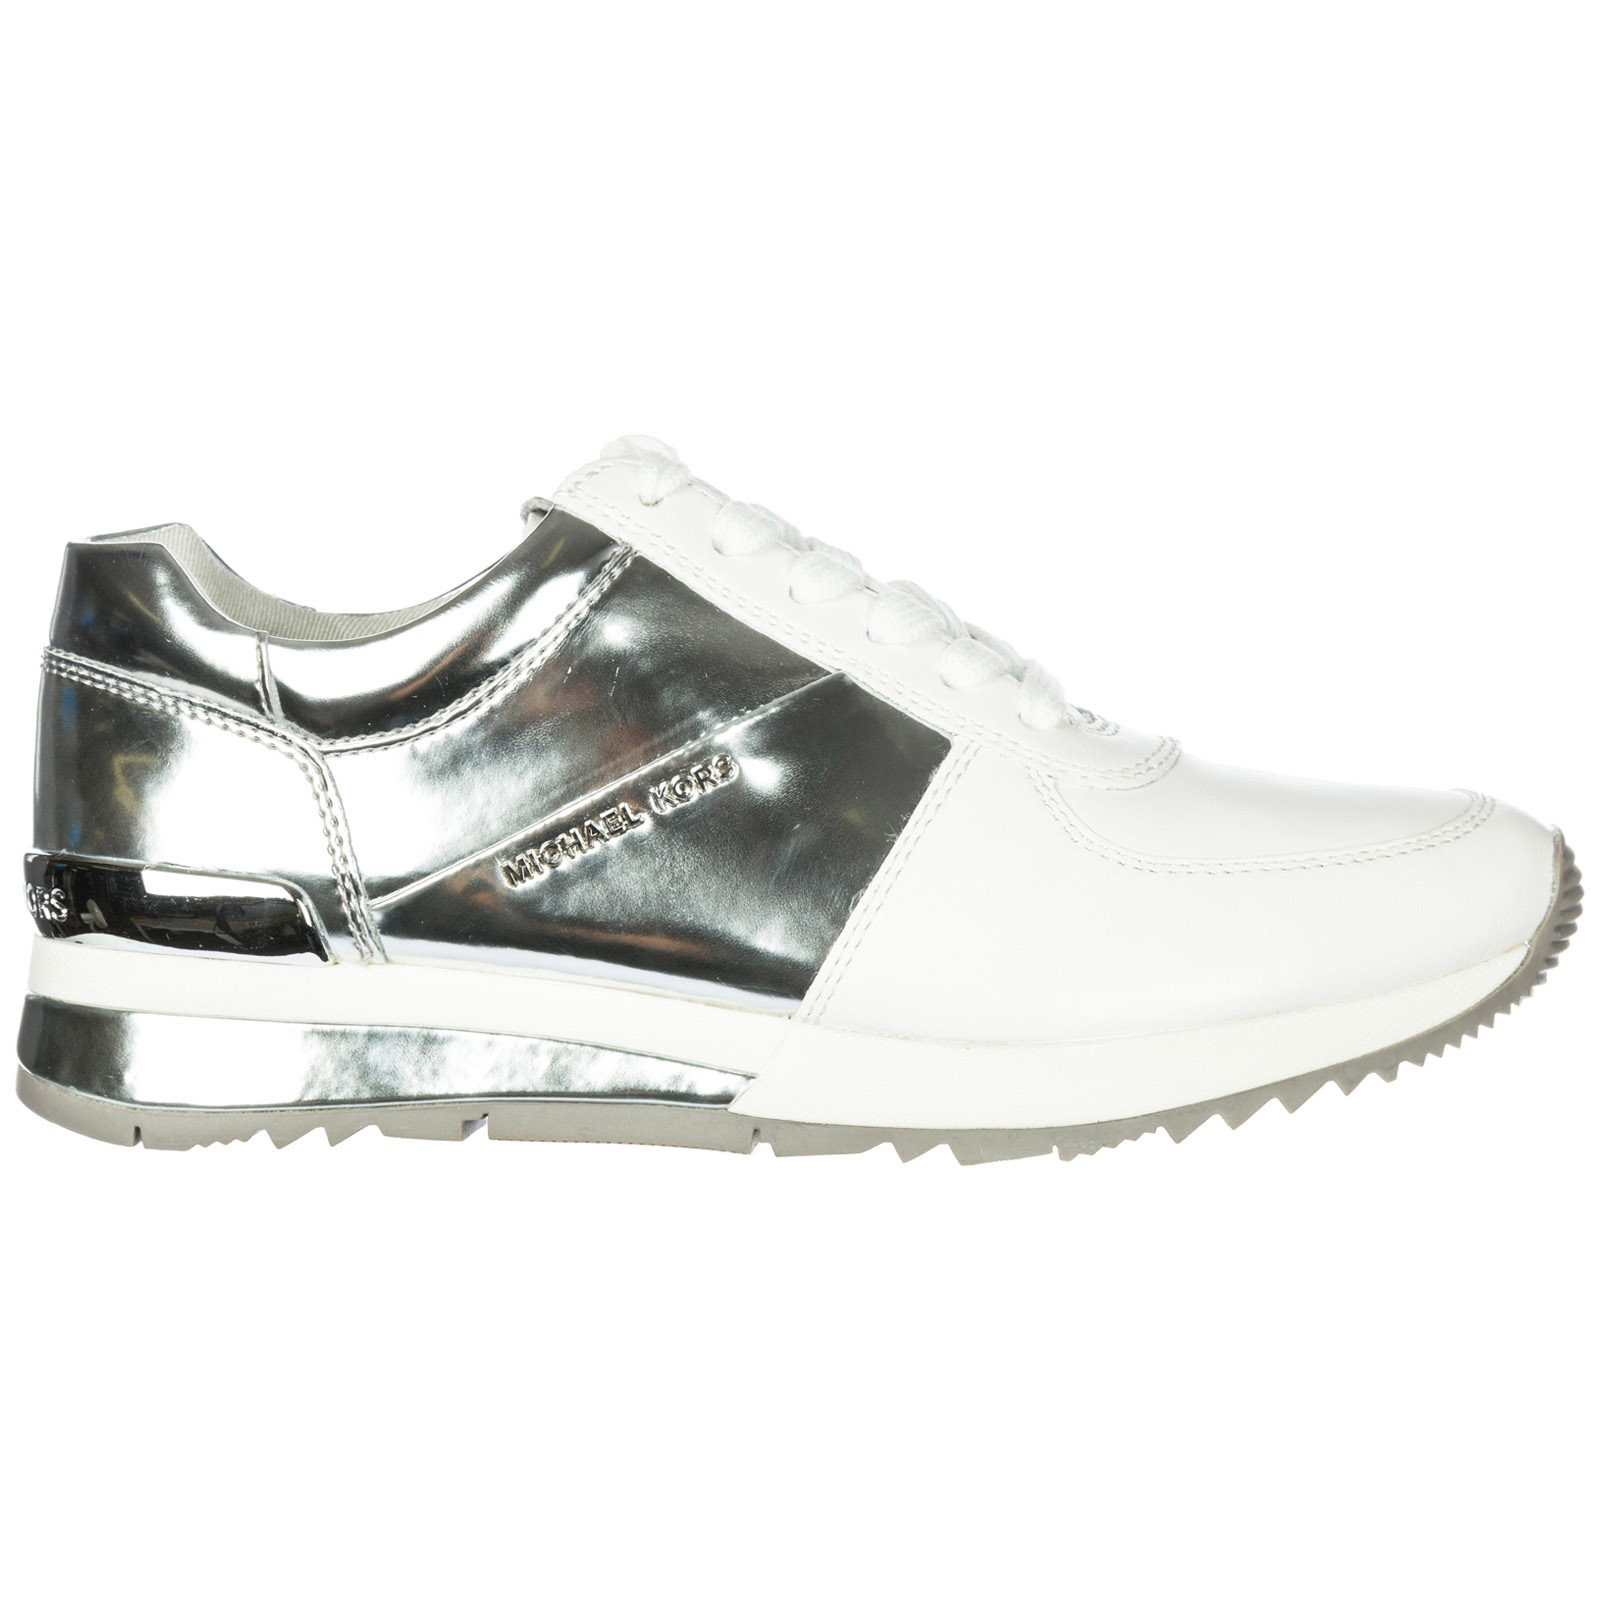 MICHAEL KORS WOMEN'S SHOES LEATHER TRAINERS SNEAKERS